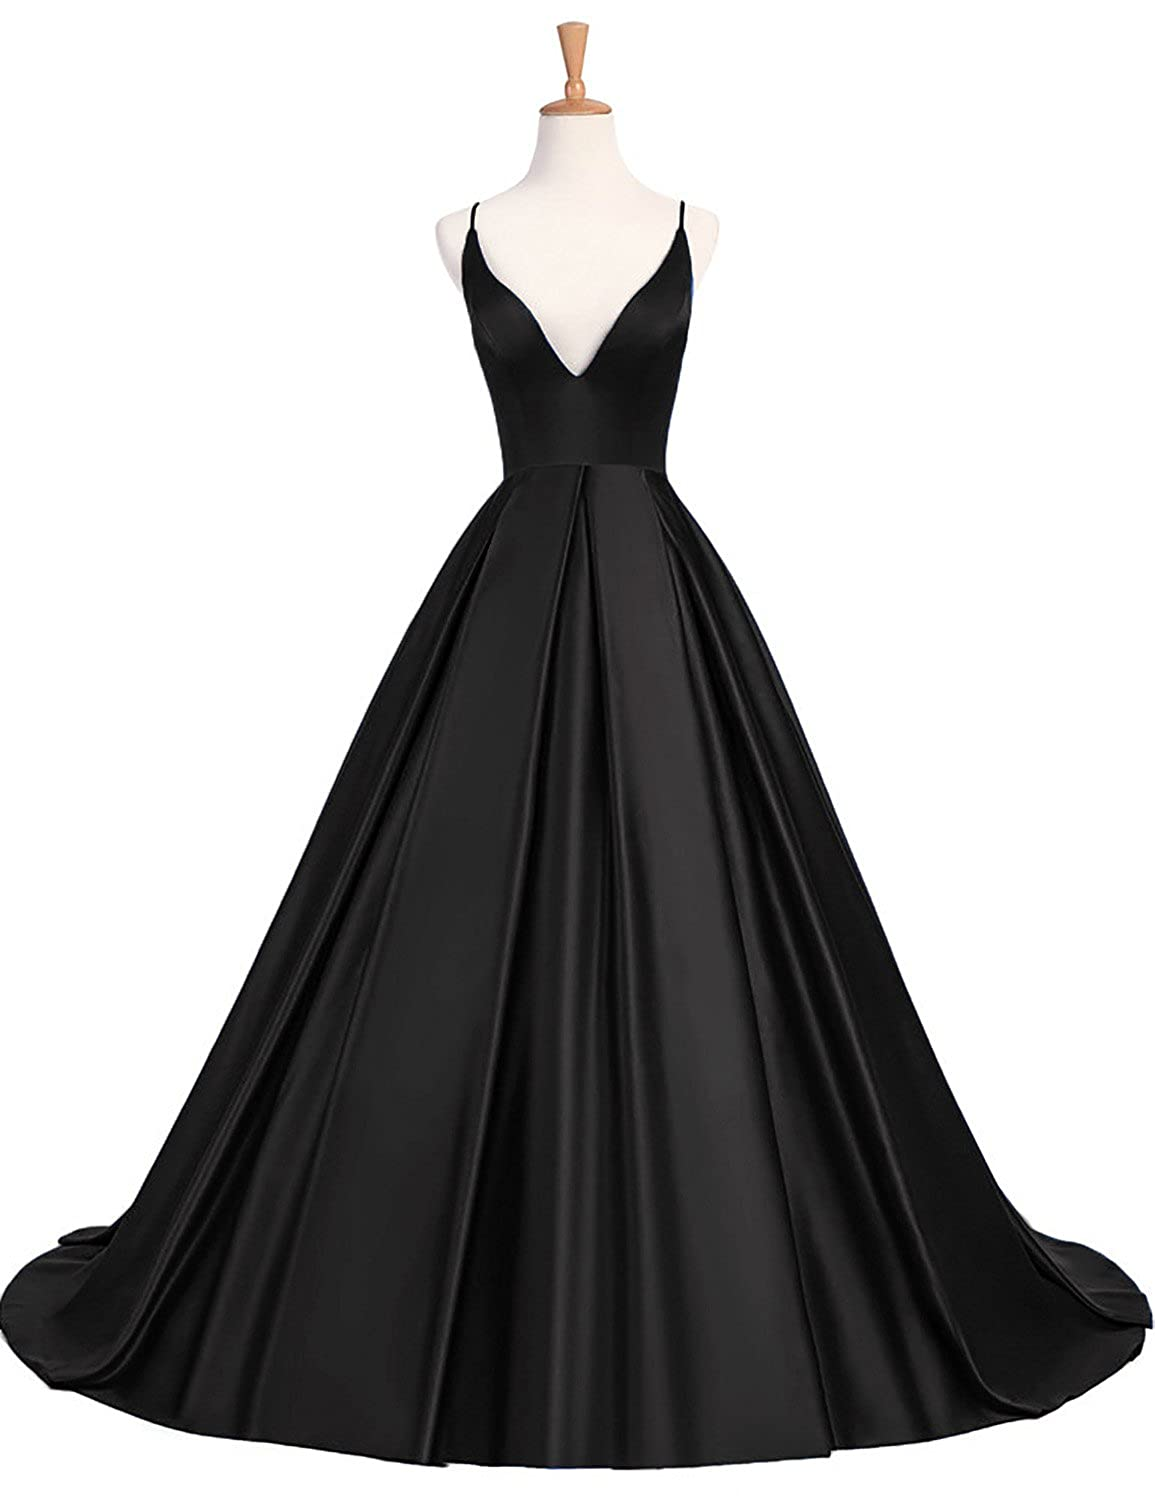 e93c71e6f21b BEAUTBRIDE Women s Sexy V-Neck Long Prom Gown Backless Evening Dresses  BEPMD04 at Amazon Women s Clothing store